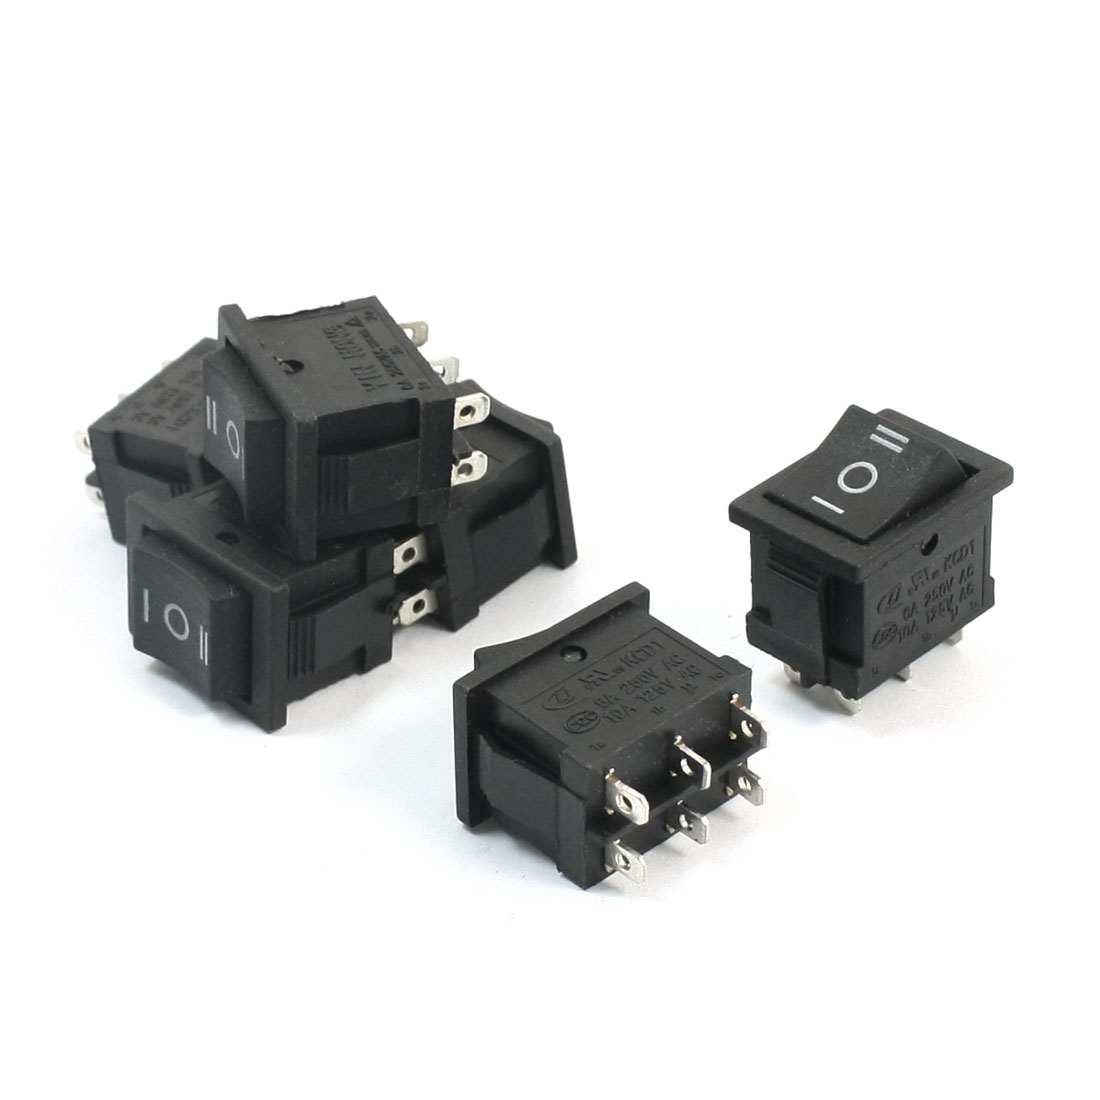 6Pcs Black Three Positions AC 250V 6A AC 125V 10A DPDT 6 Pins Panel Mounting Boat Rocker Switch